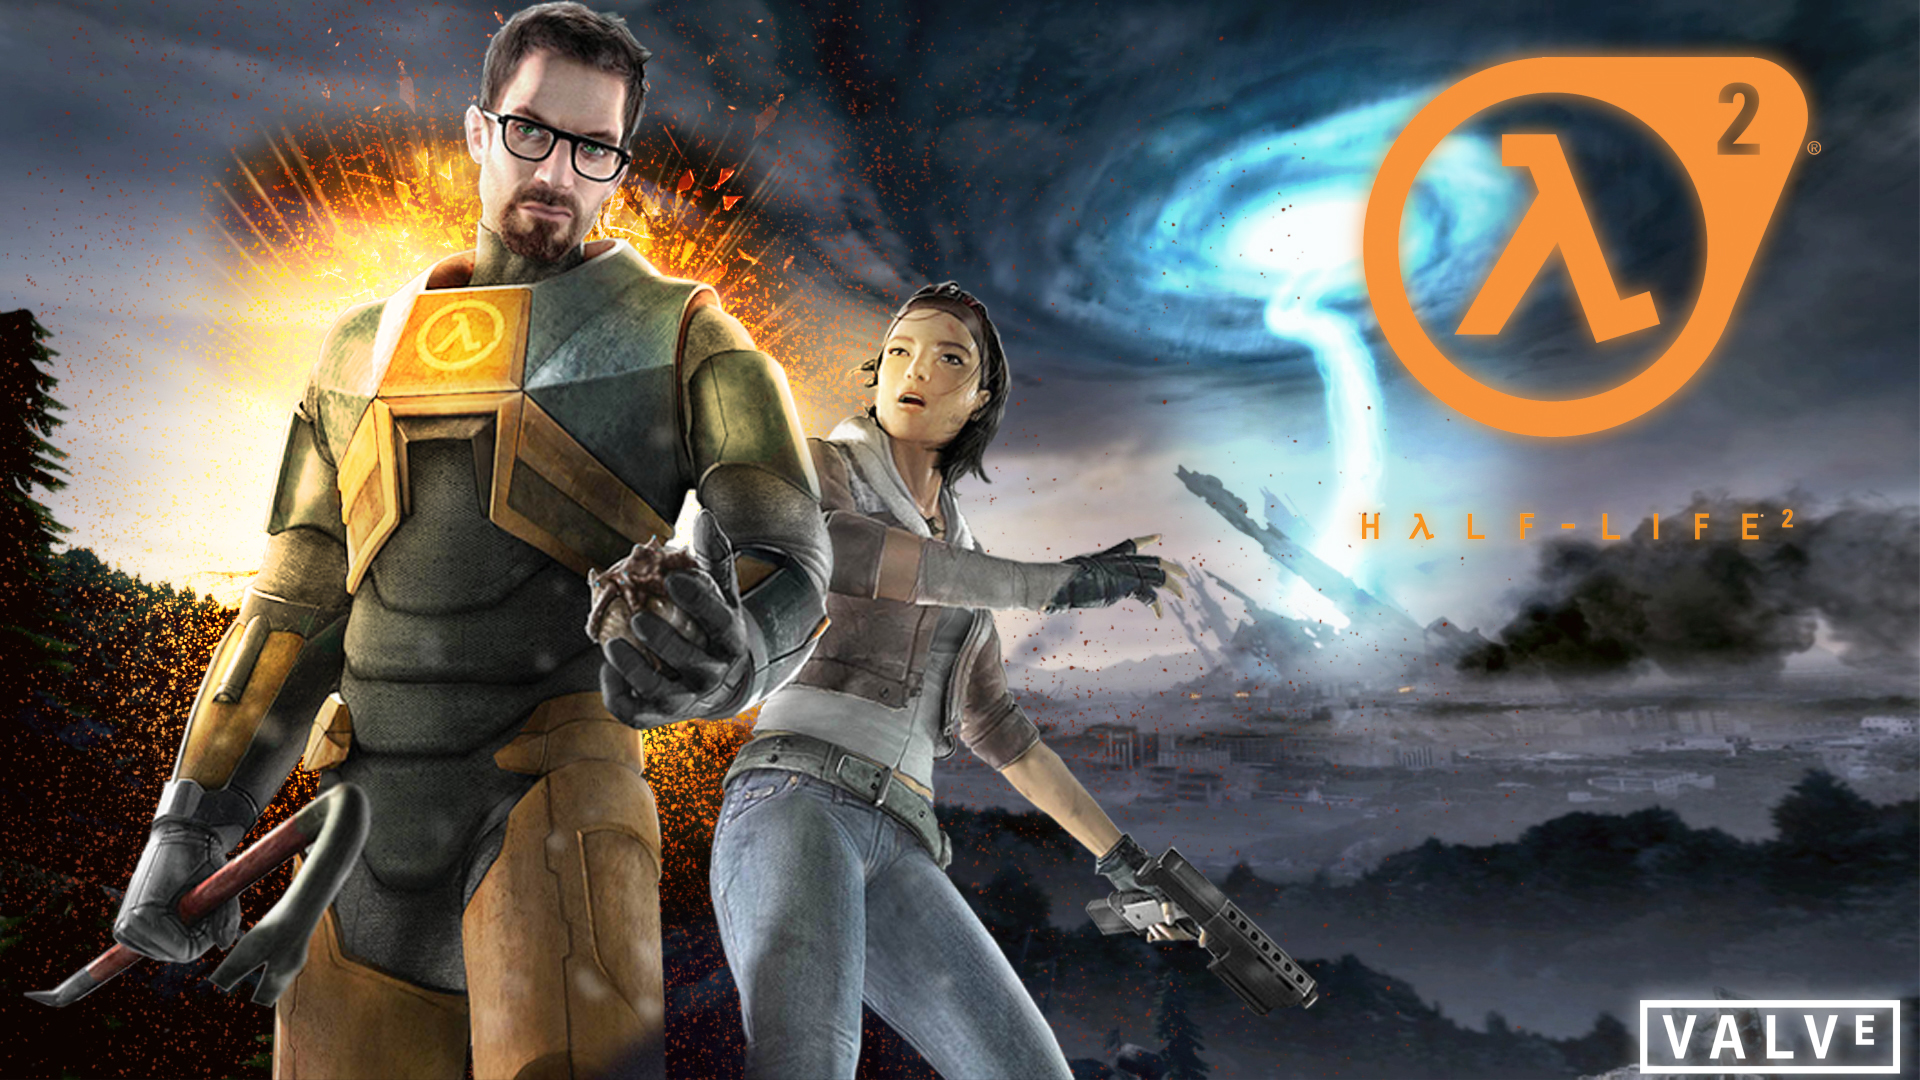 Free Download Half Life 2 Wallpaper My Style By Karl97885